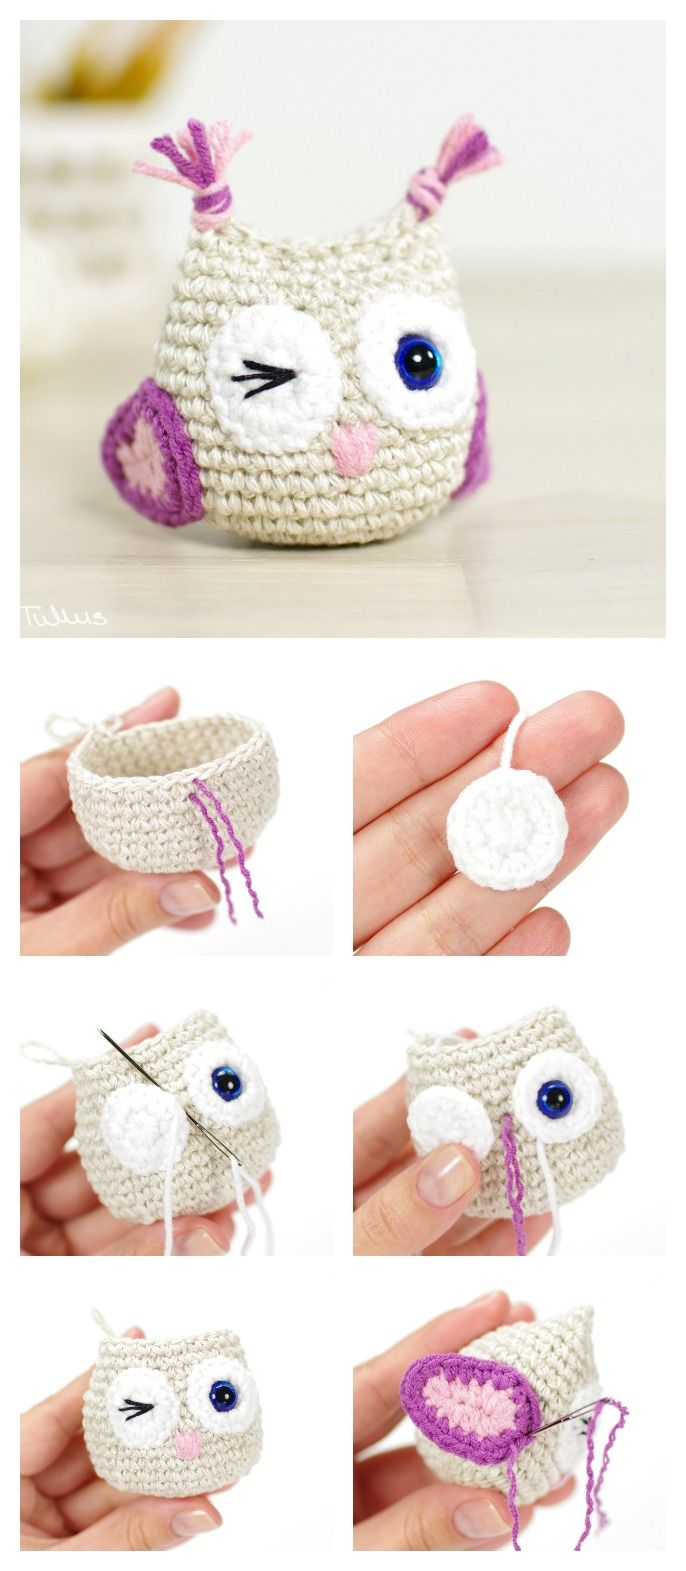 DIY Crocheted Owls with Free Patterns | Tejido, Ganchillo y Patrones ...